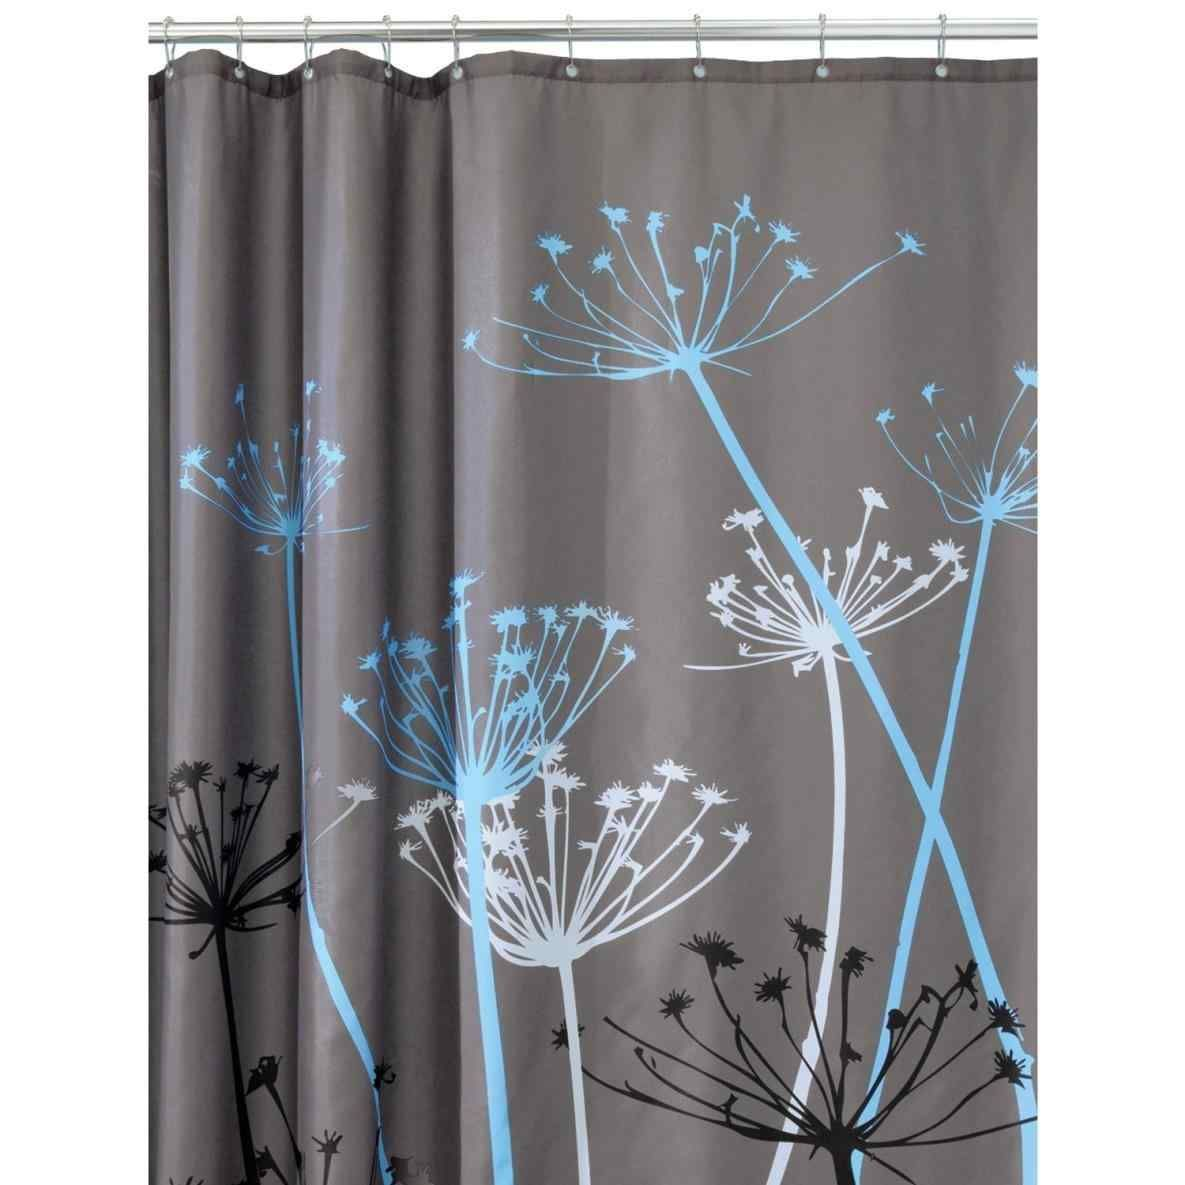 The best and unique shower curtains for menus bathroom in